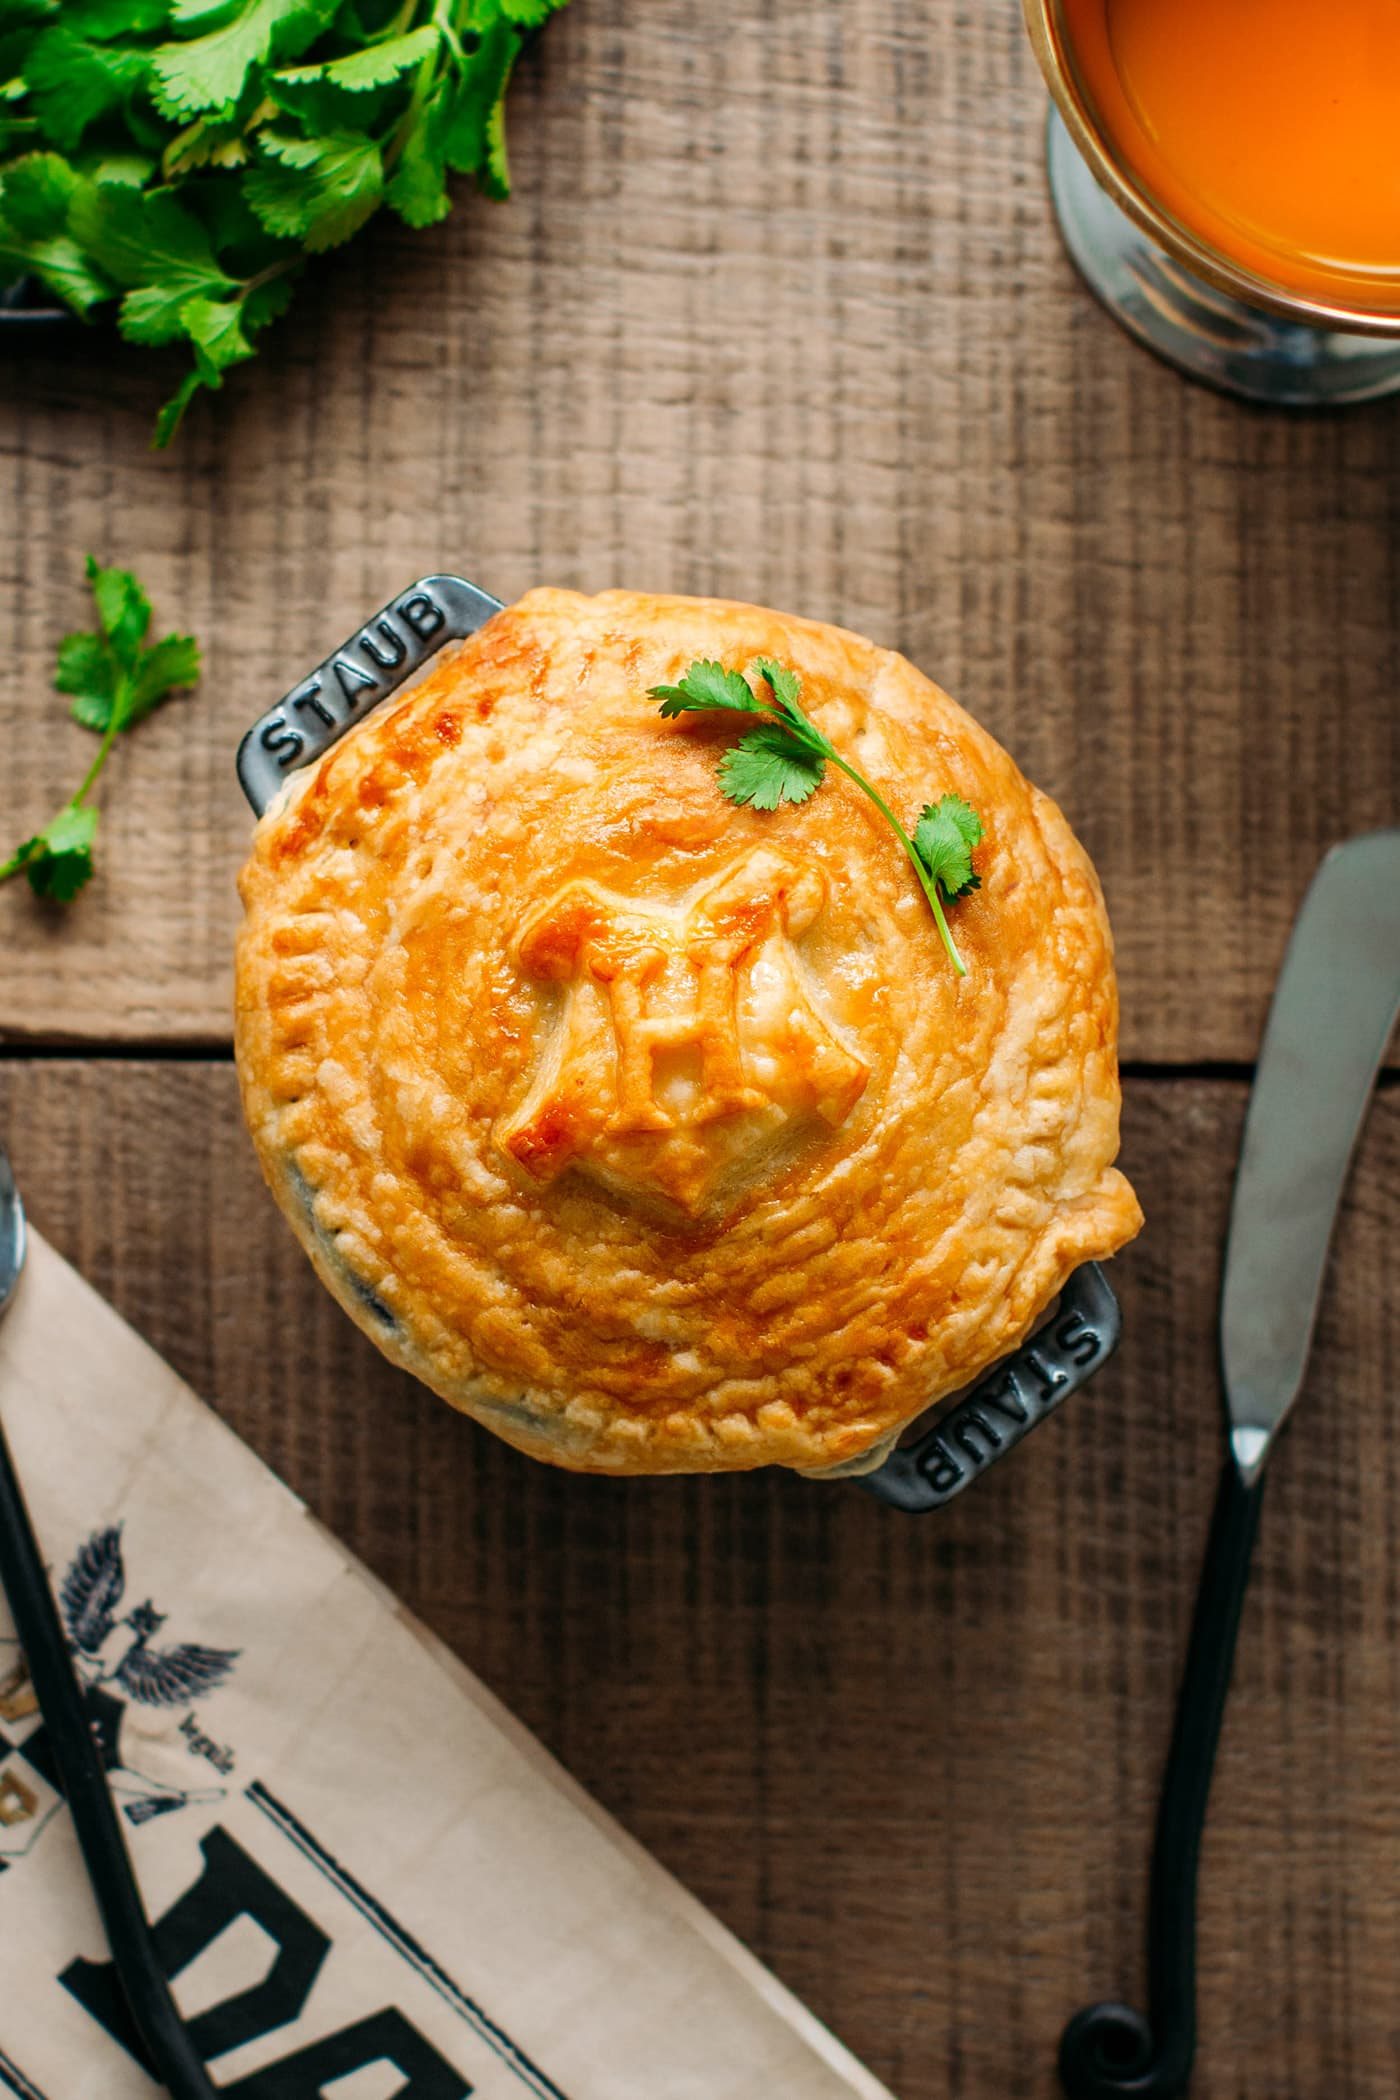 Hogwarts' Butter Mushrooms Pot Pie